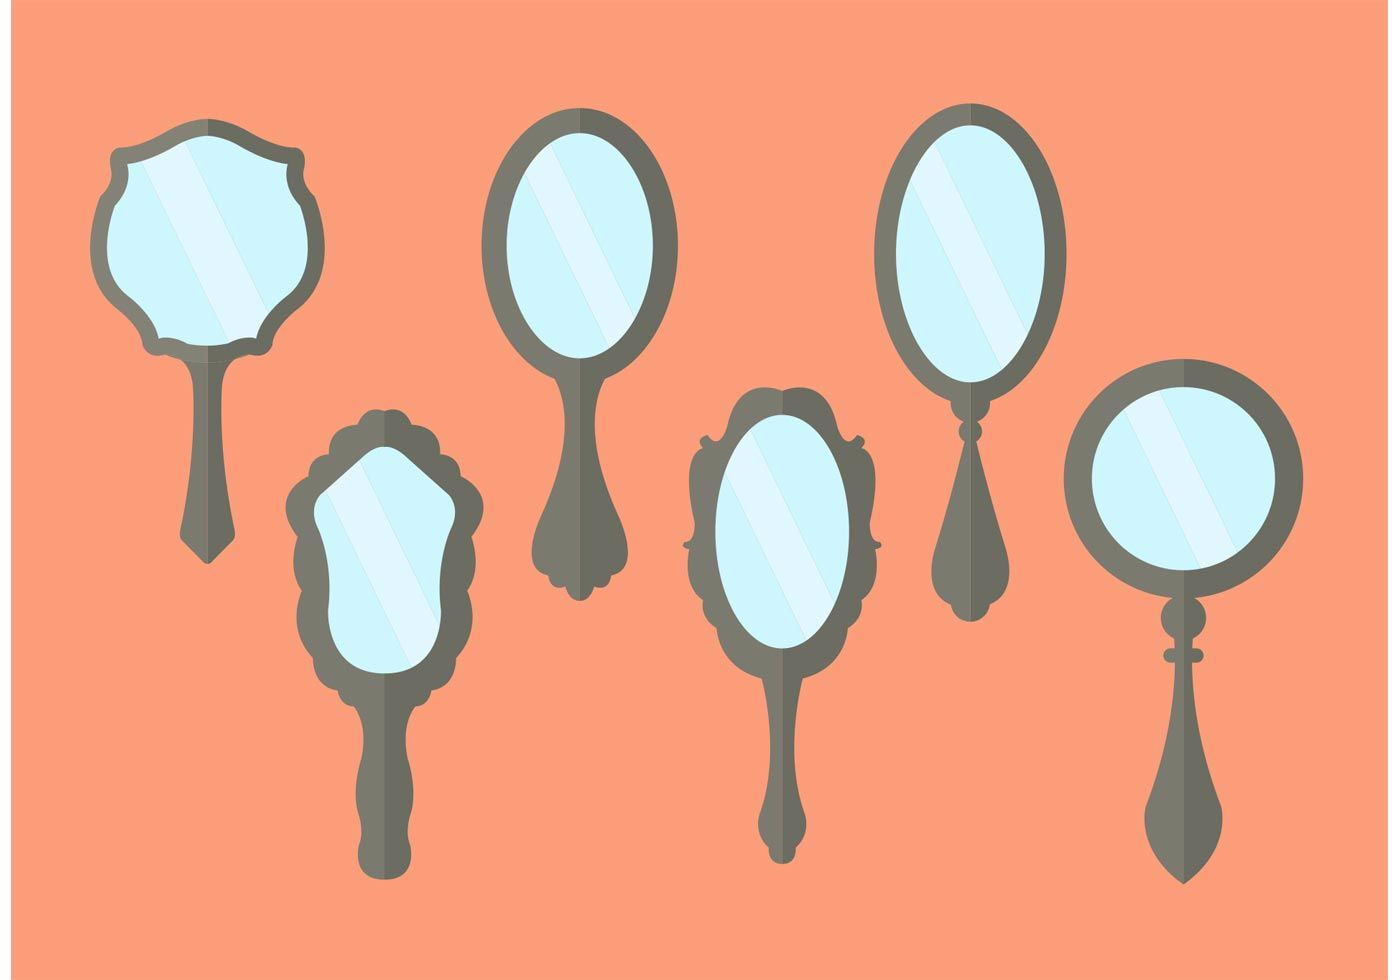 Vintage hand mirror stock image. Image of ancient, isolated - 29818867